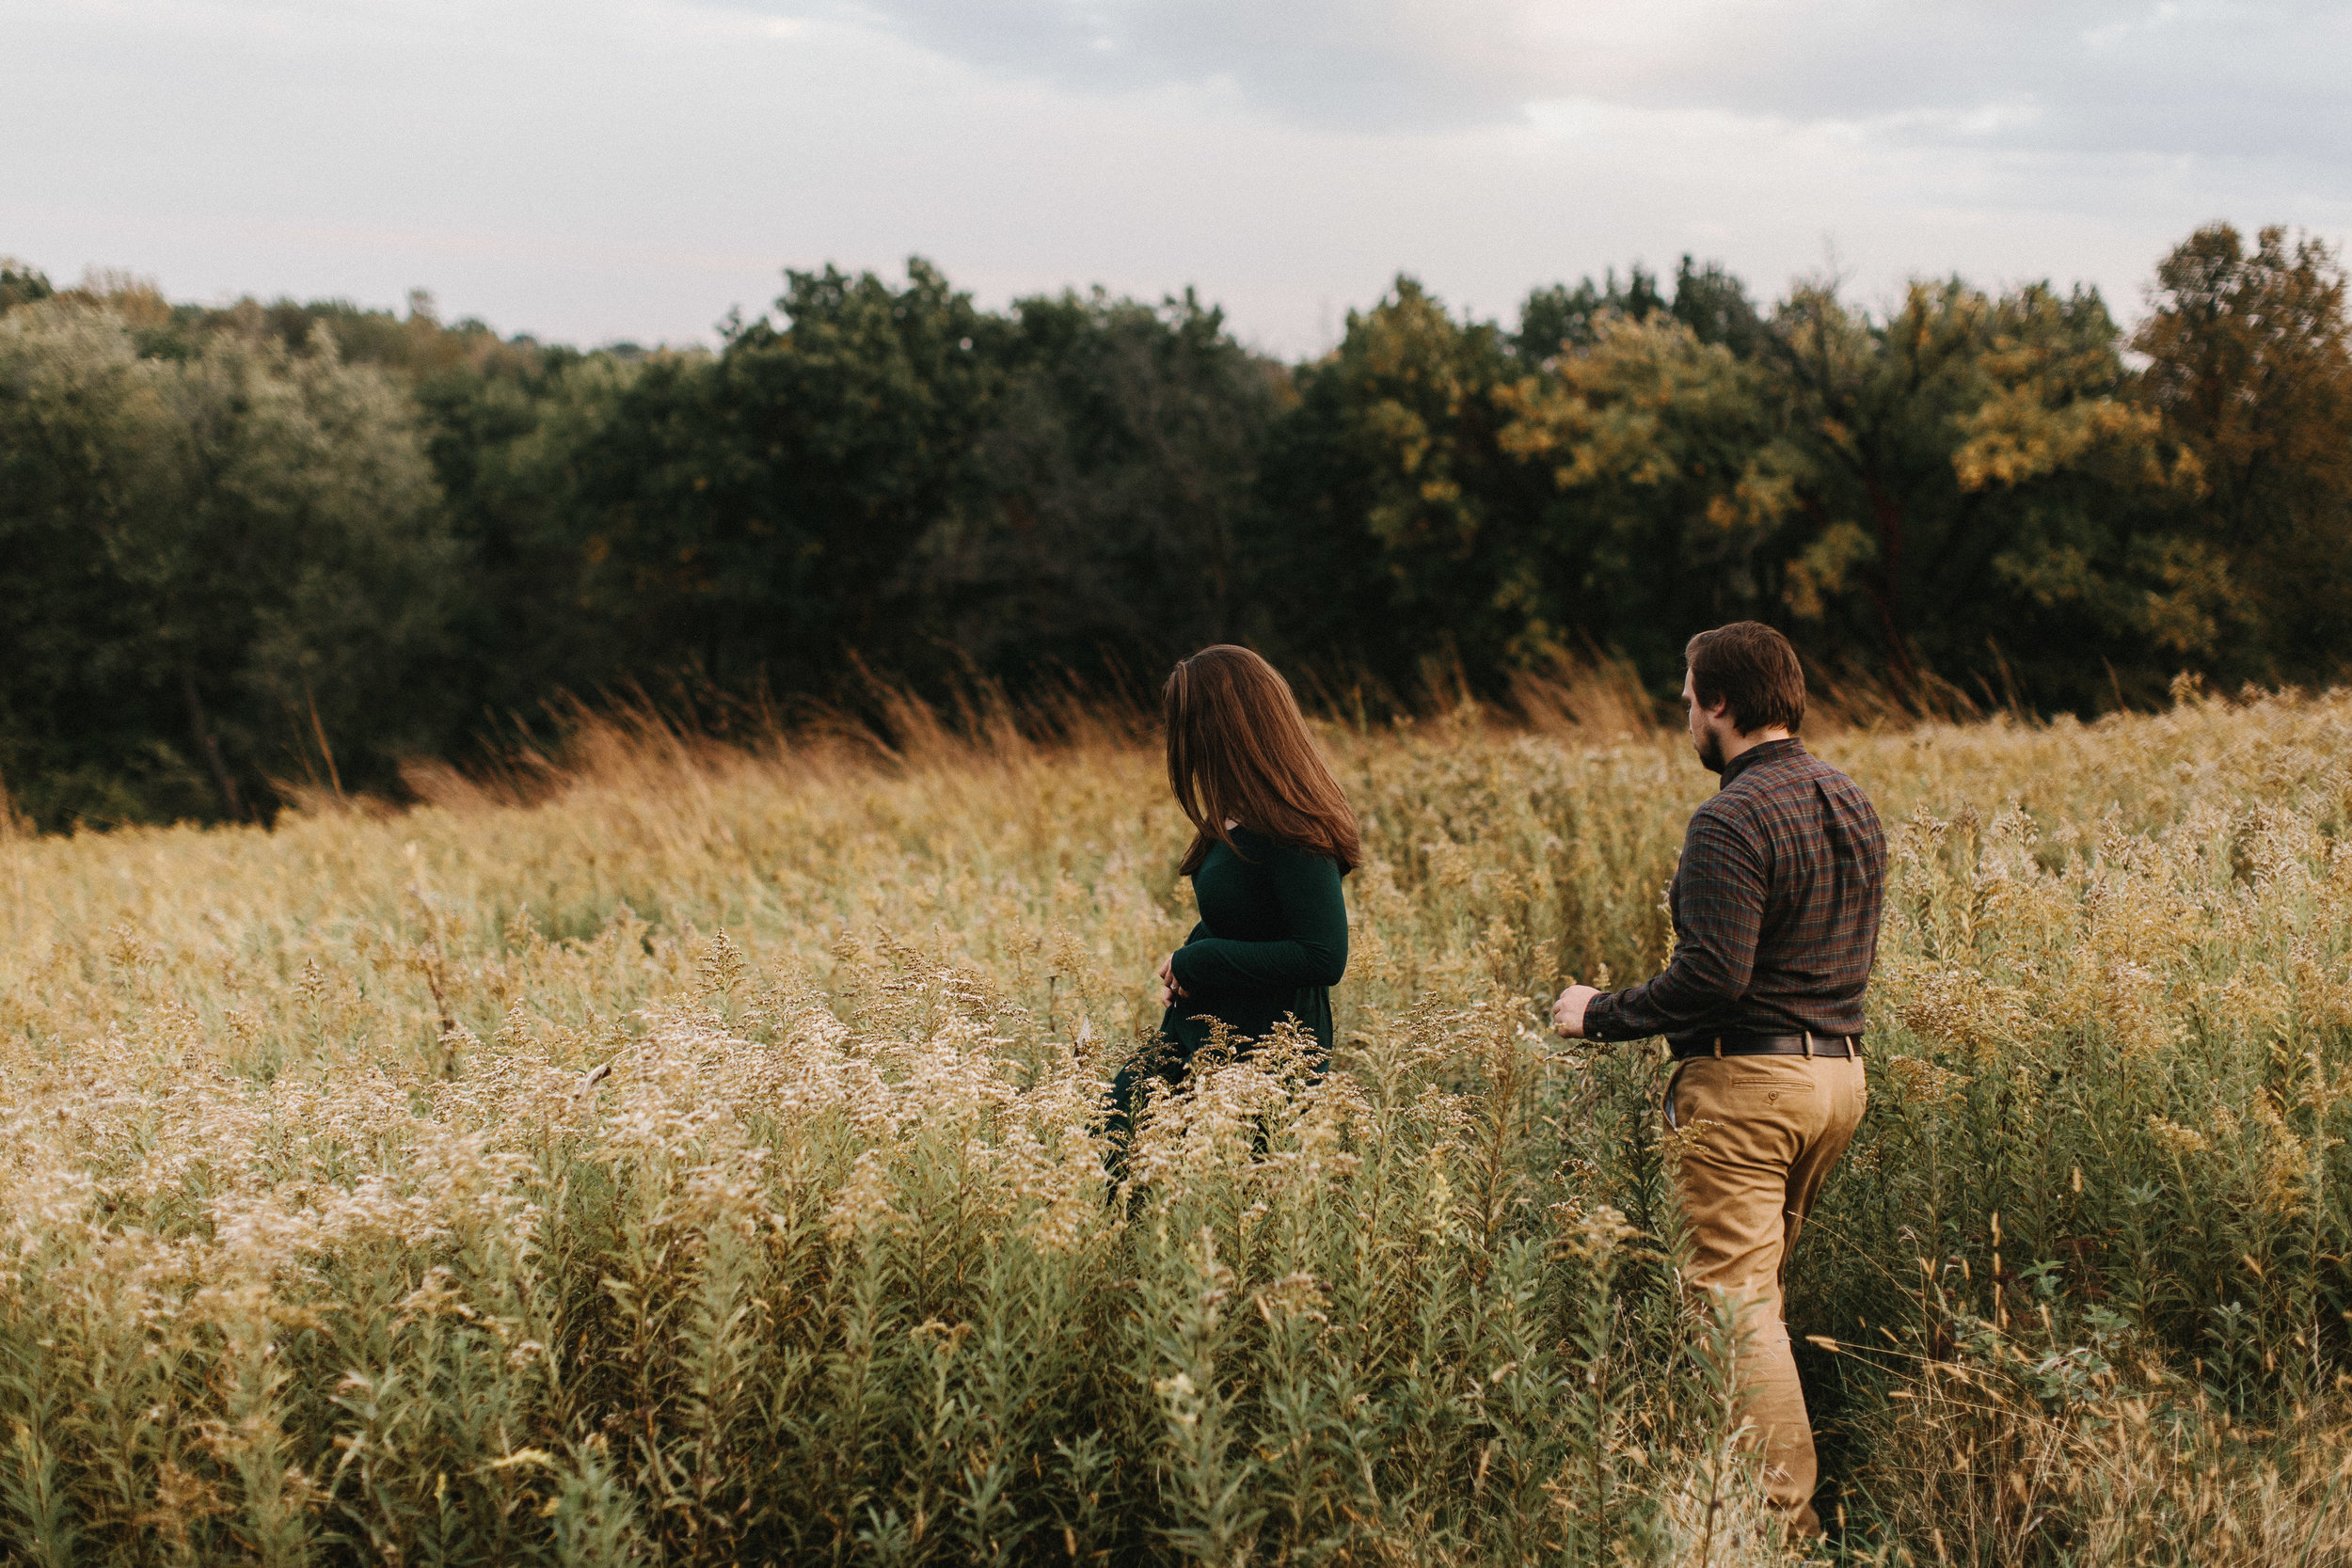 iowa_city_engagement_adventure_prairie_graduate_at_home_dog_couples_downtown_wilsons_orchard_1236.jpg